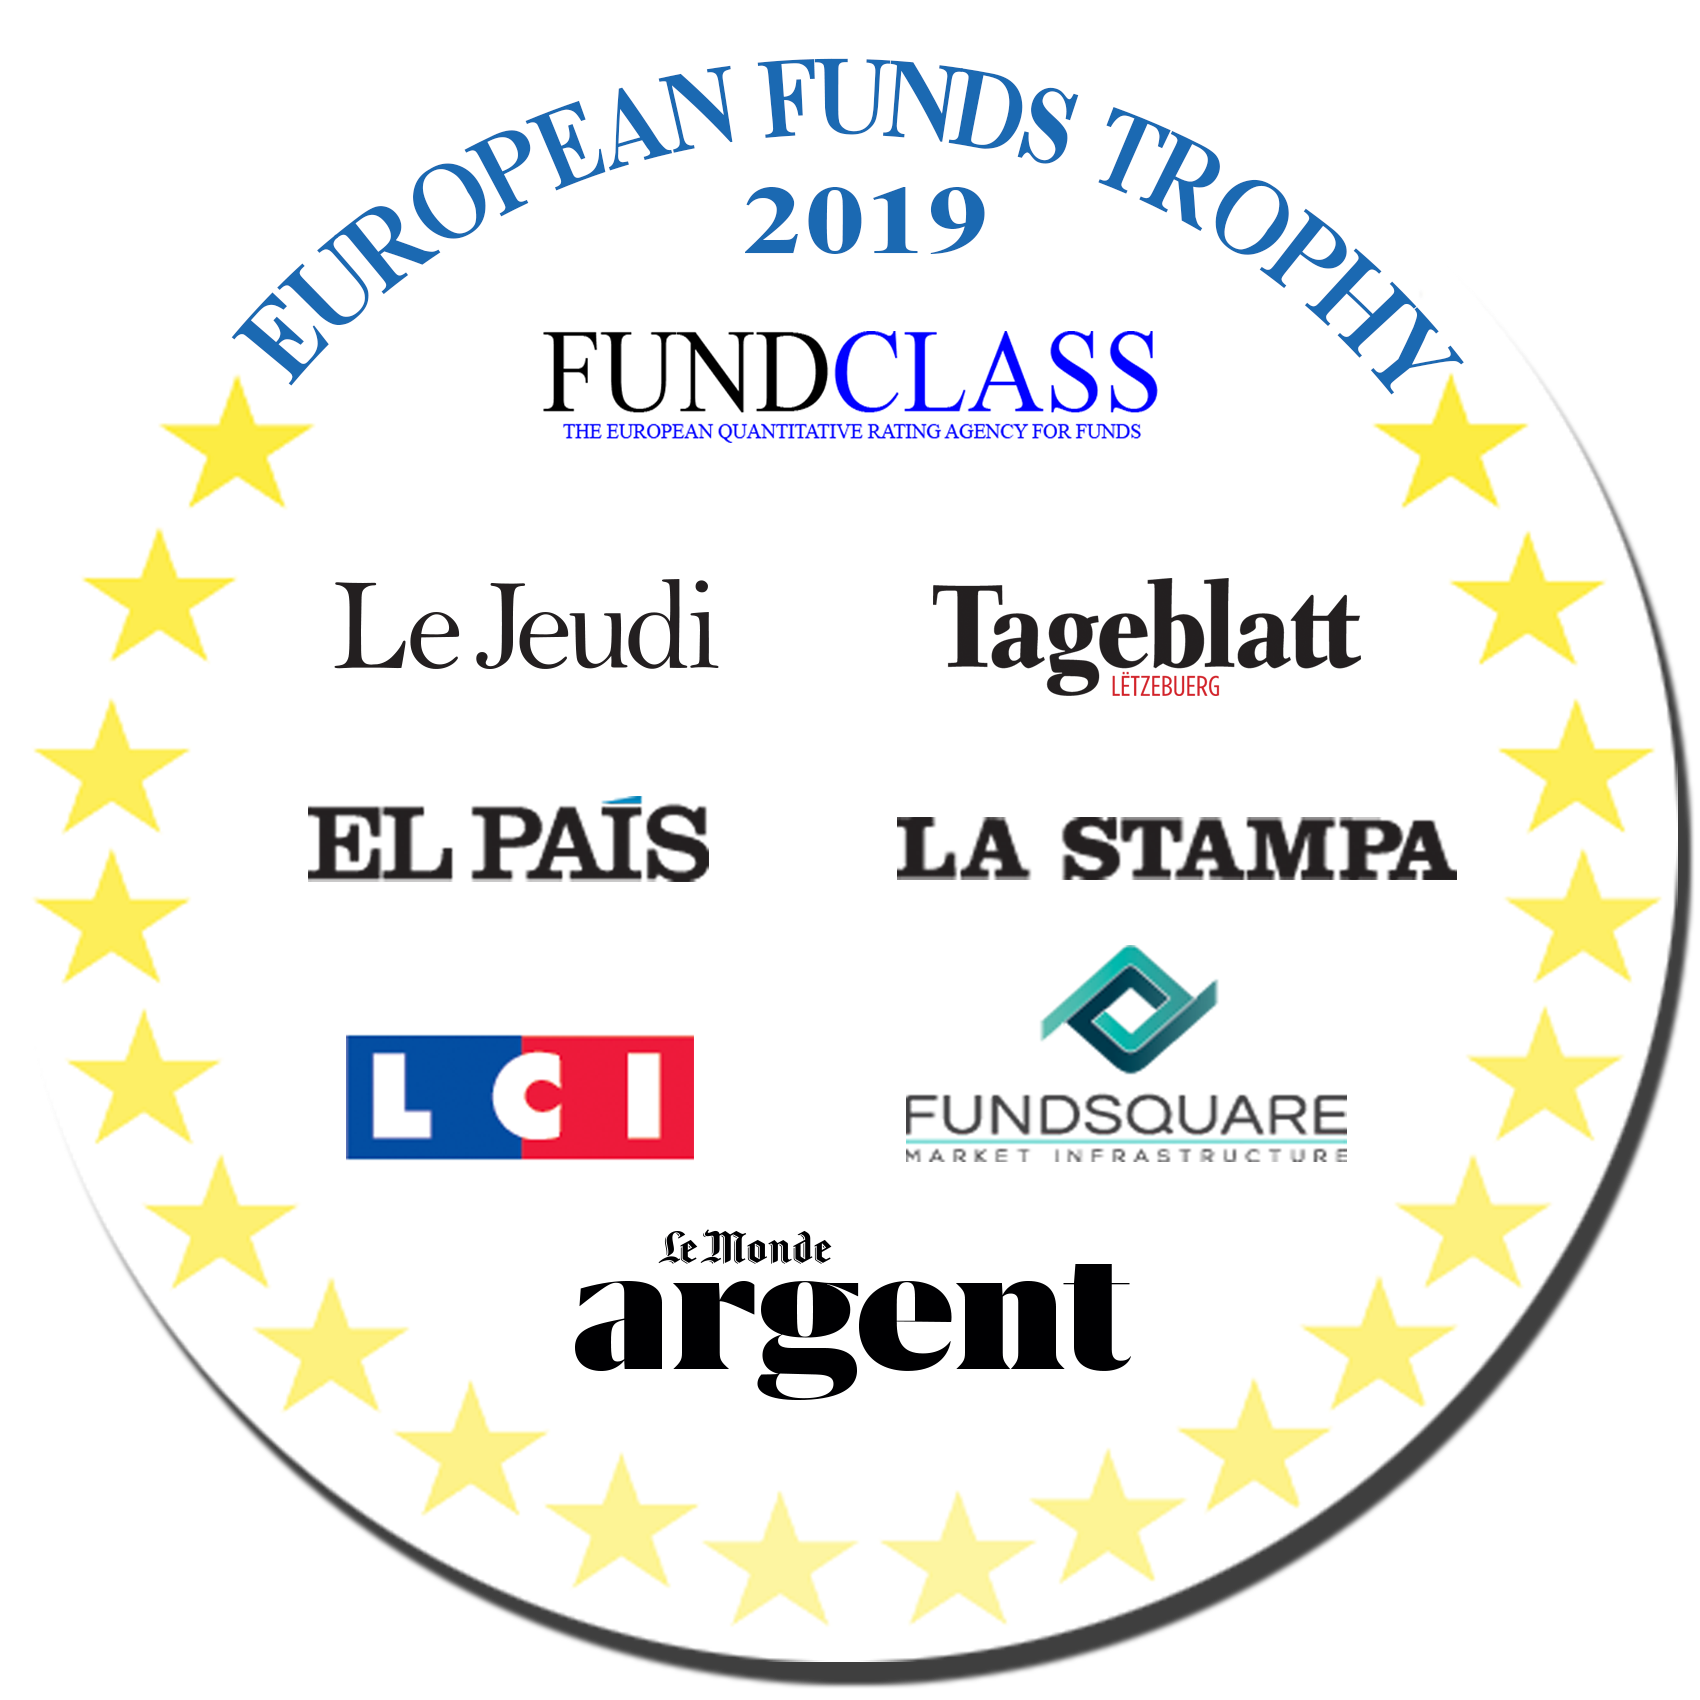 European Funds Trophy 2019